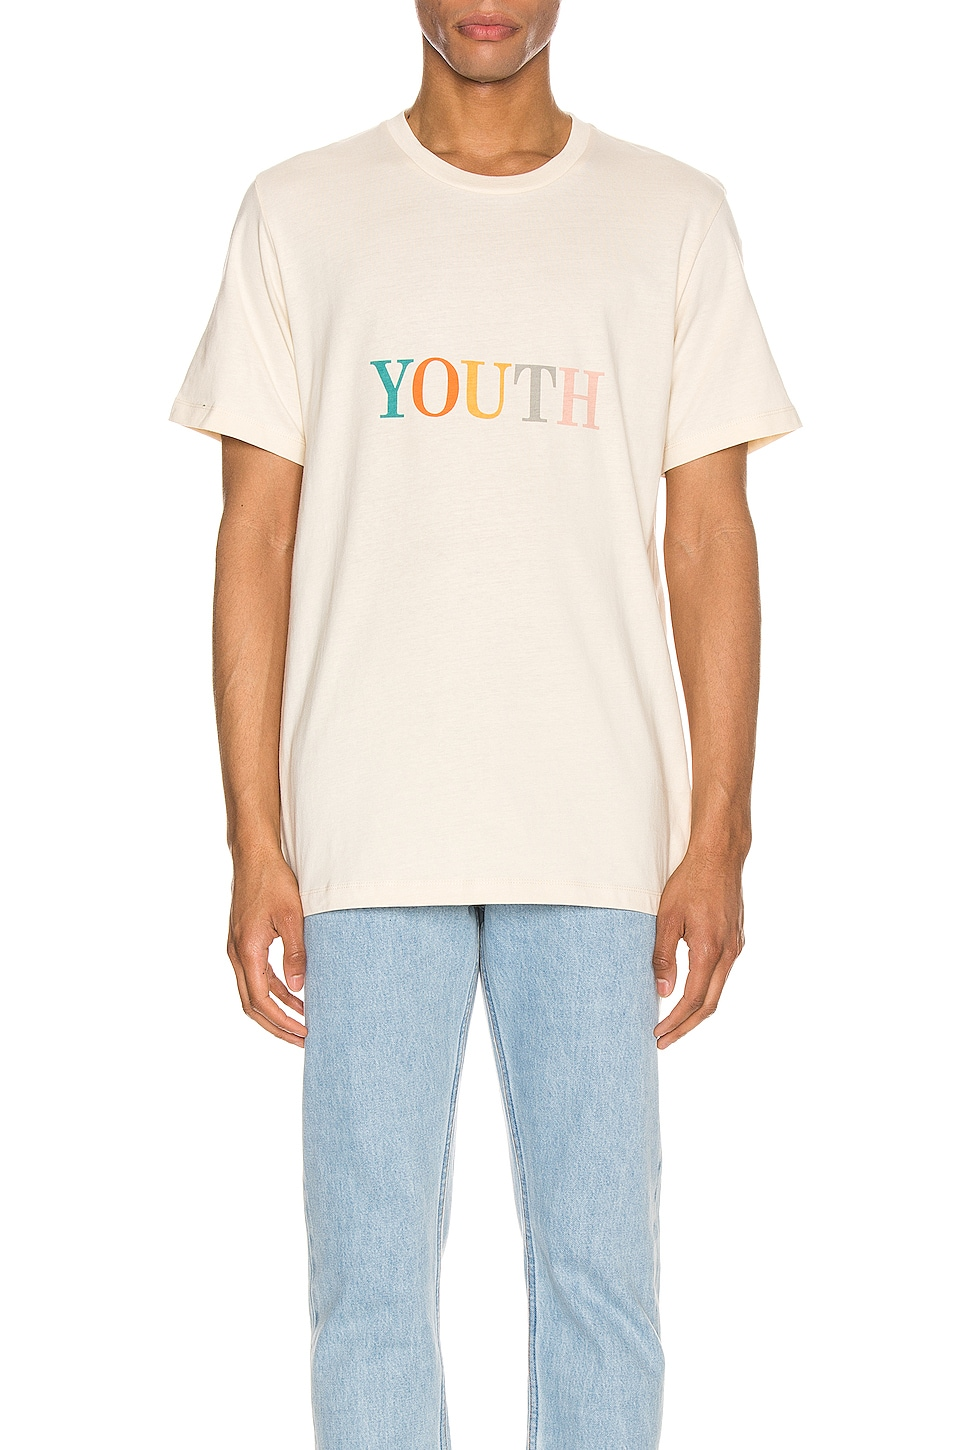 Native Youth T-SHIRT GRAPHIQUE VERANO